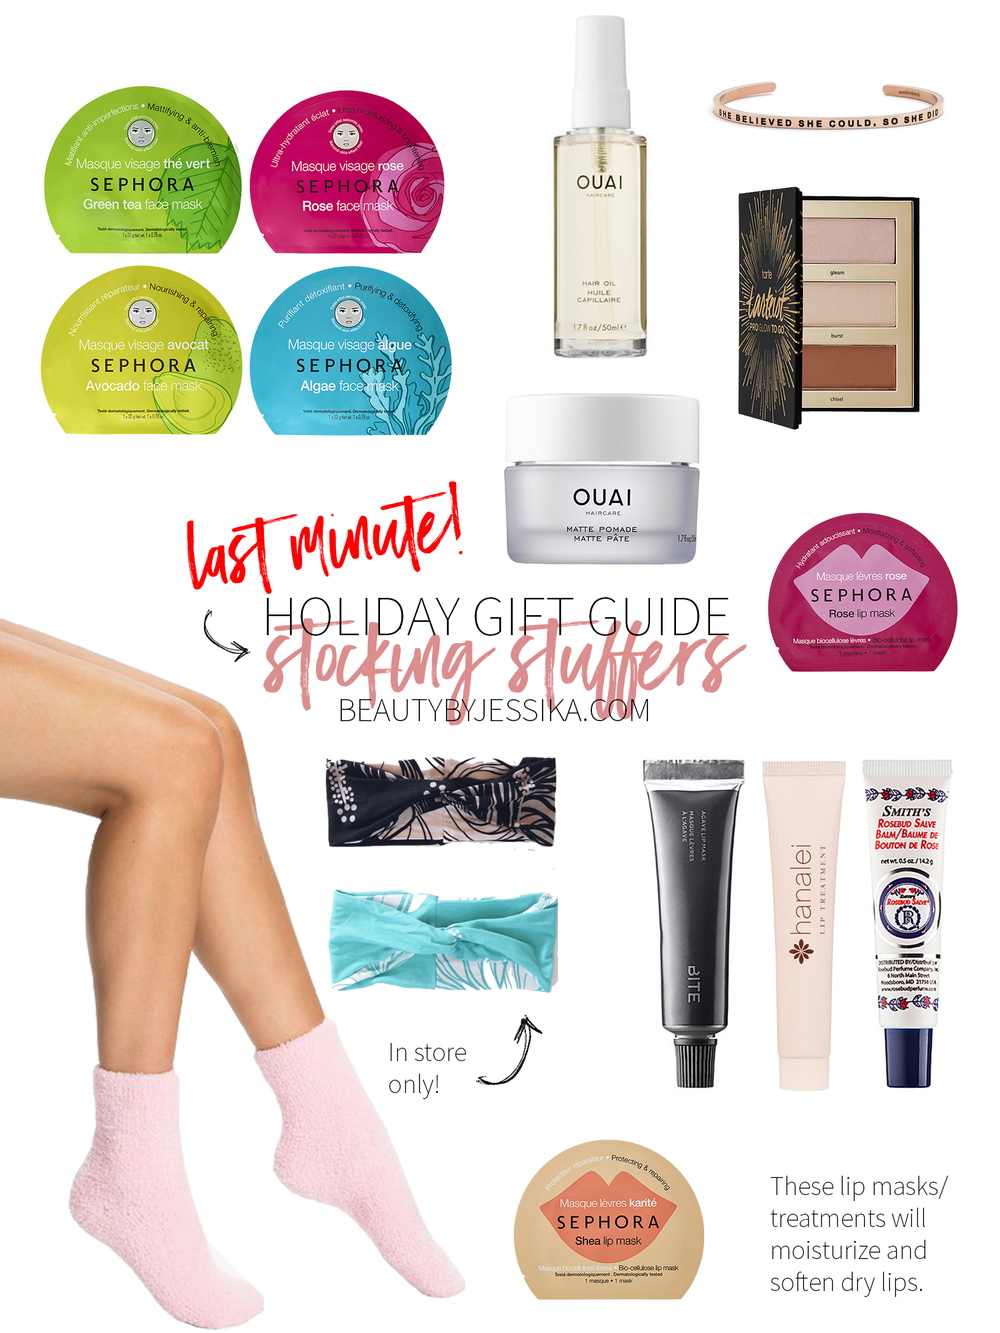 Are you ready for Christmas? If you're still doing some last minute shopping, here are some great stocking stuffer ideas. More on beautybyjessika.com.